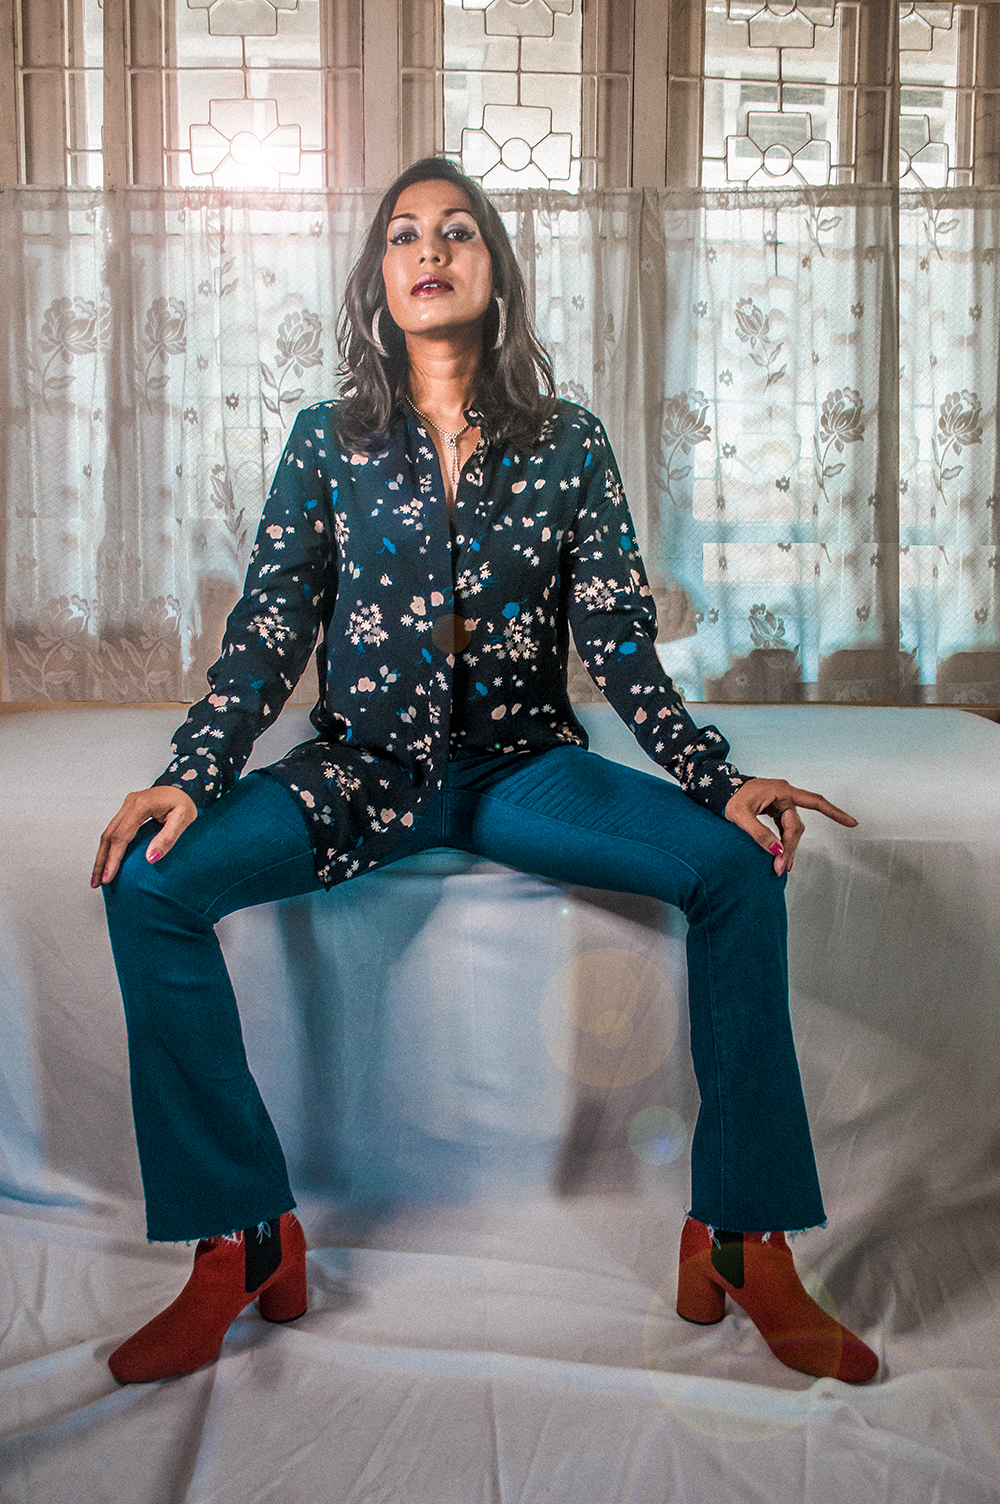 DIY Jeans, Indian Fashion Influencer, Fashion Blogger, fashion Designer, Boot Cut Jeans, Red boots, Floral shirt, sarmistha goswami-1